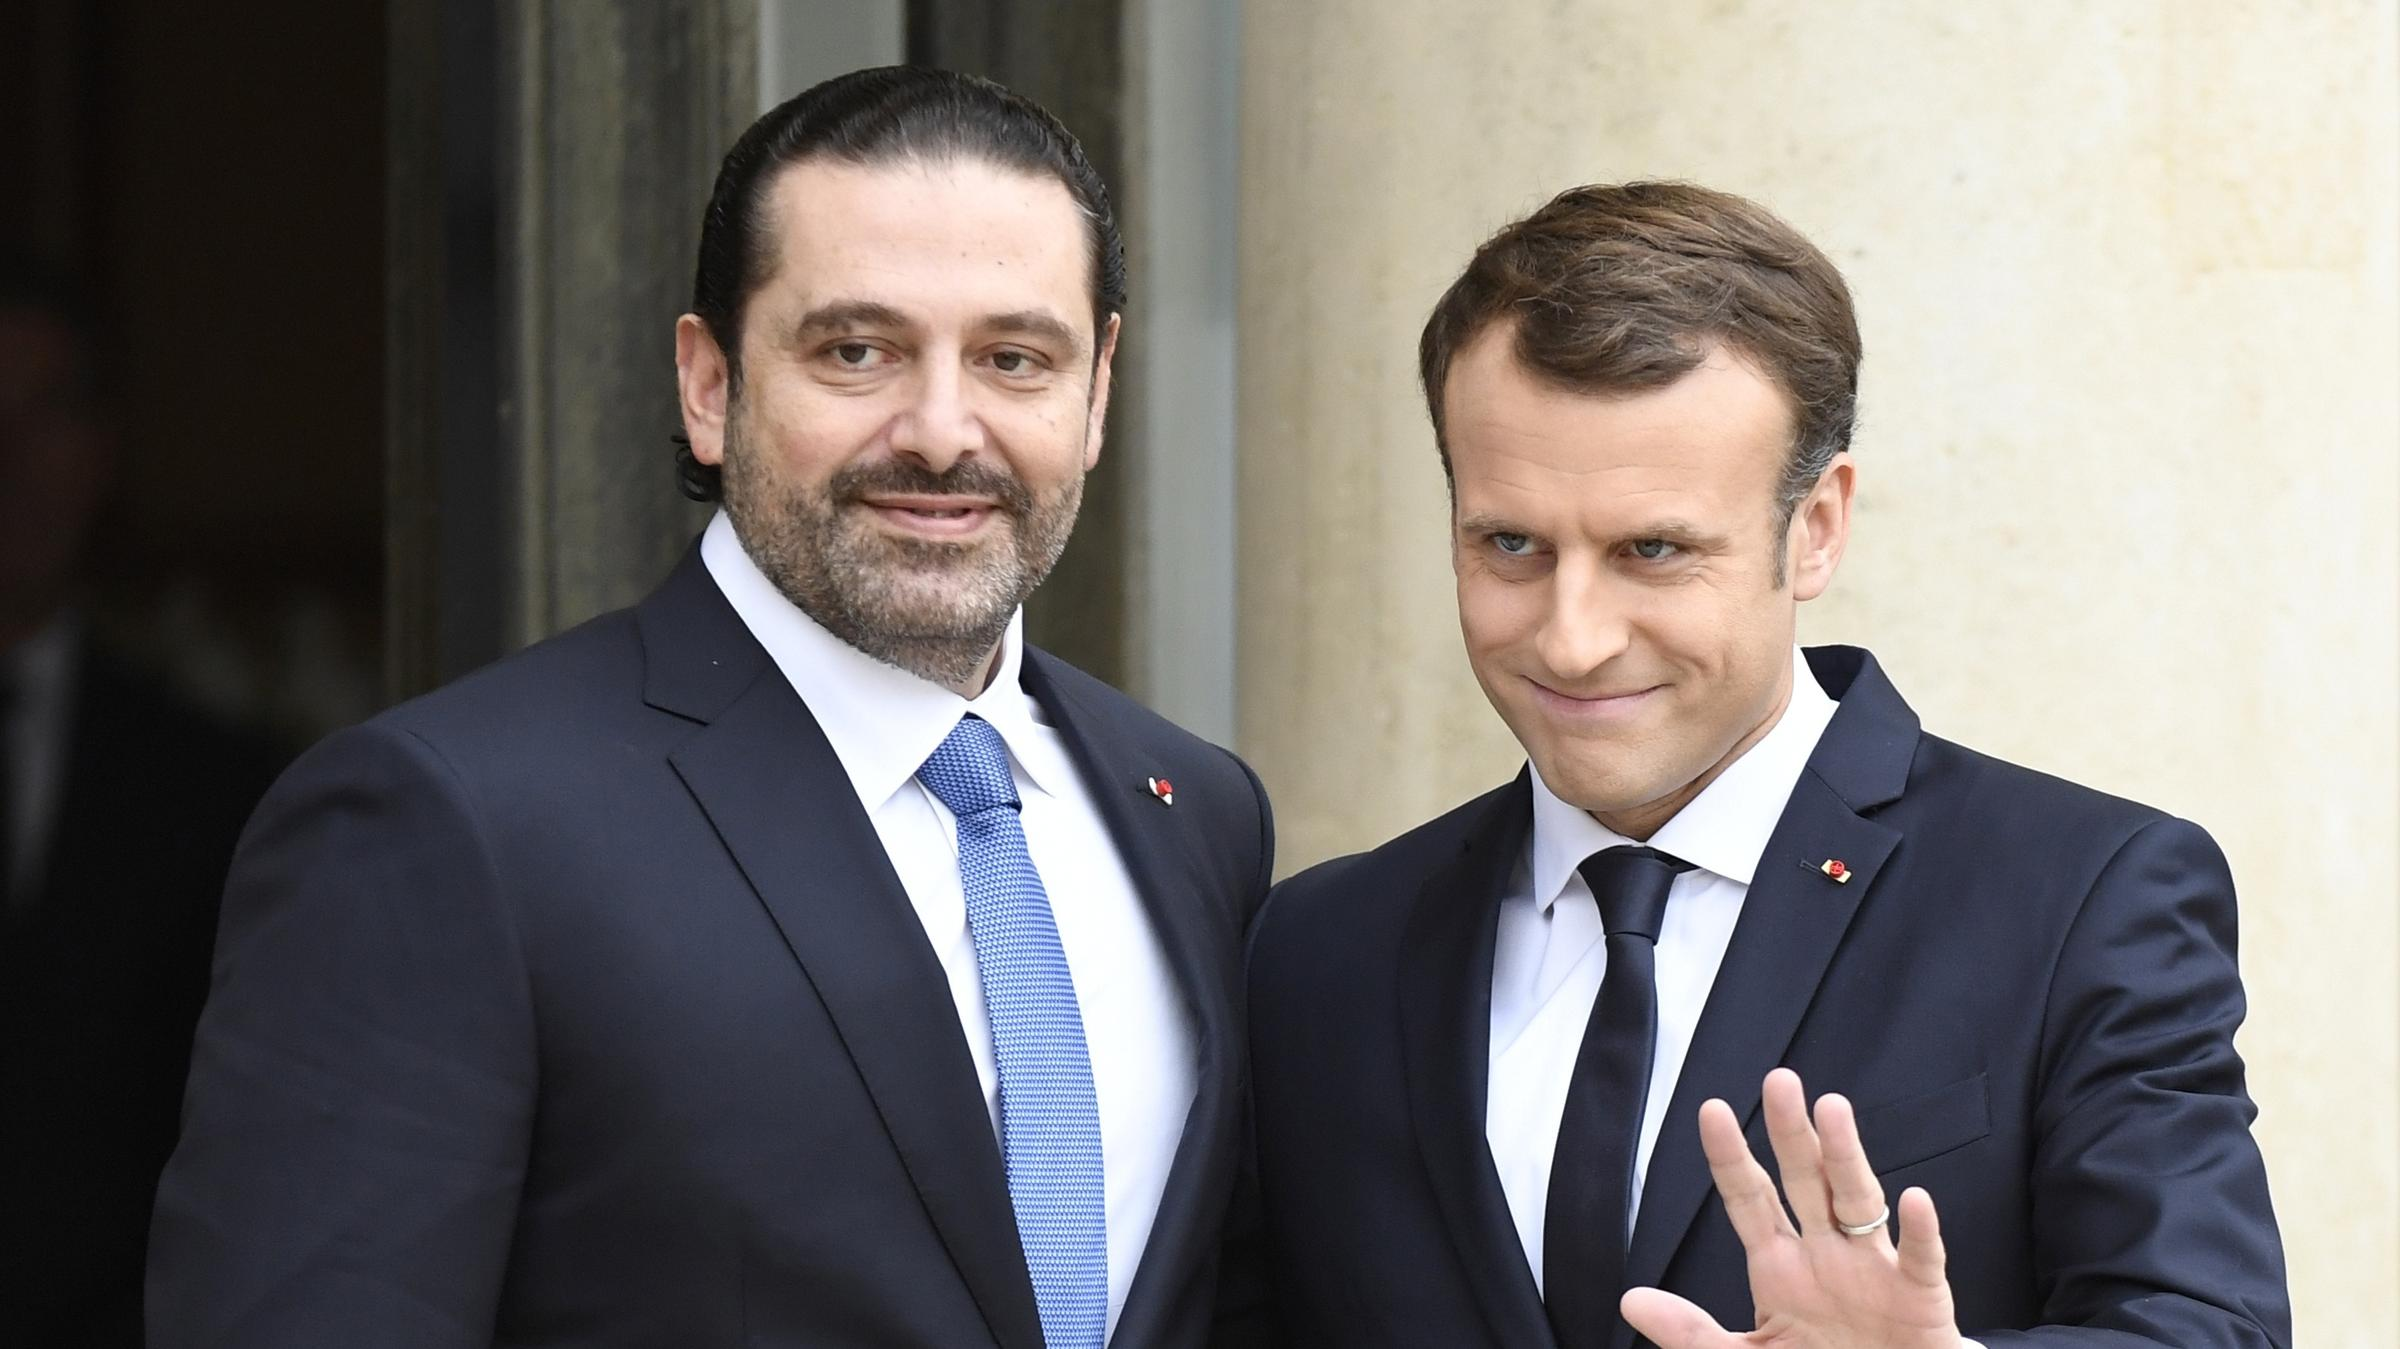 Macron invites Hariri, family to France